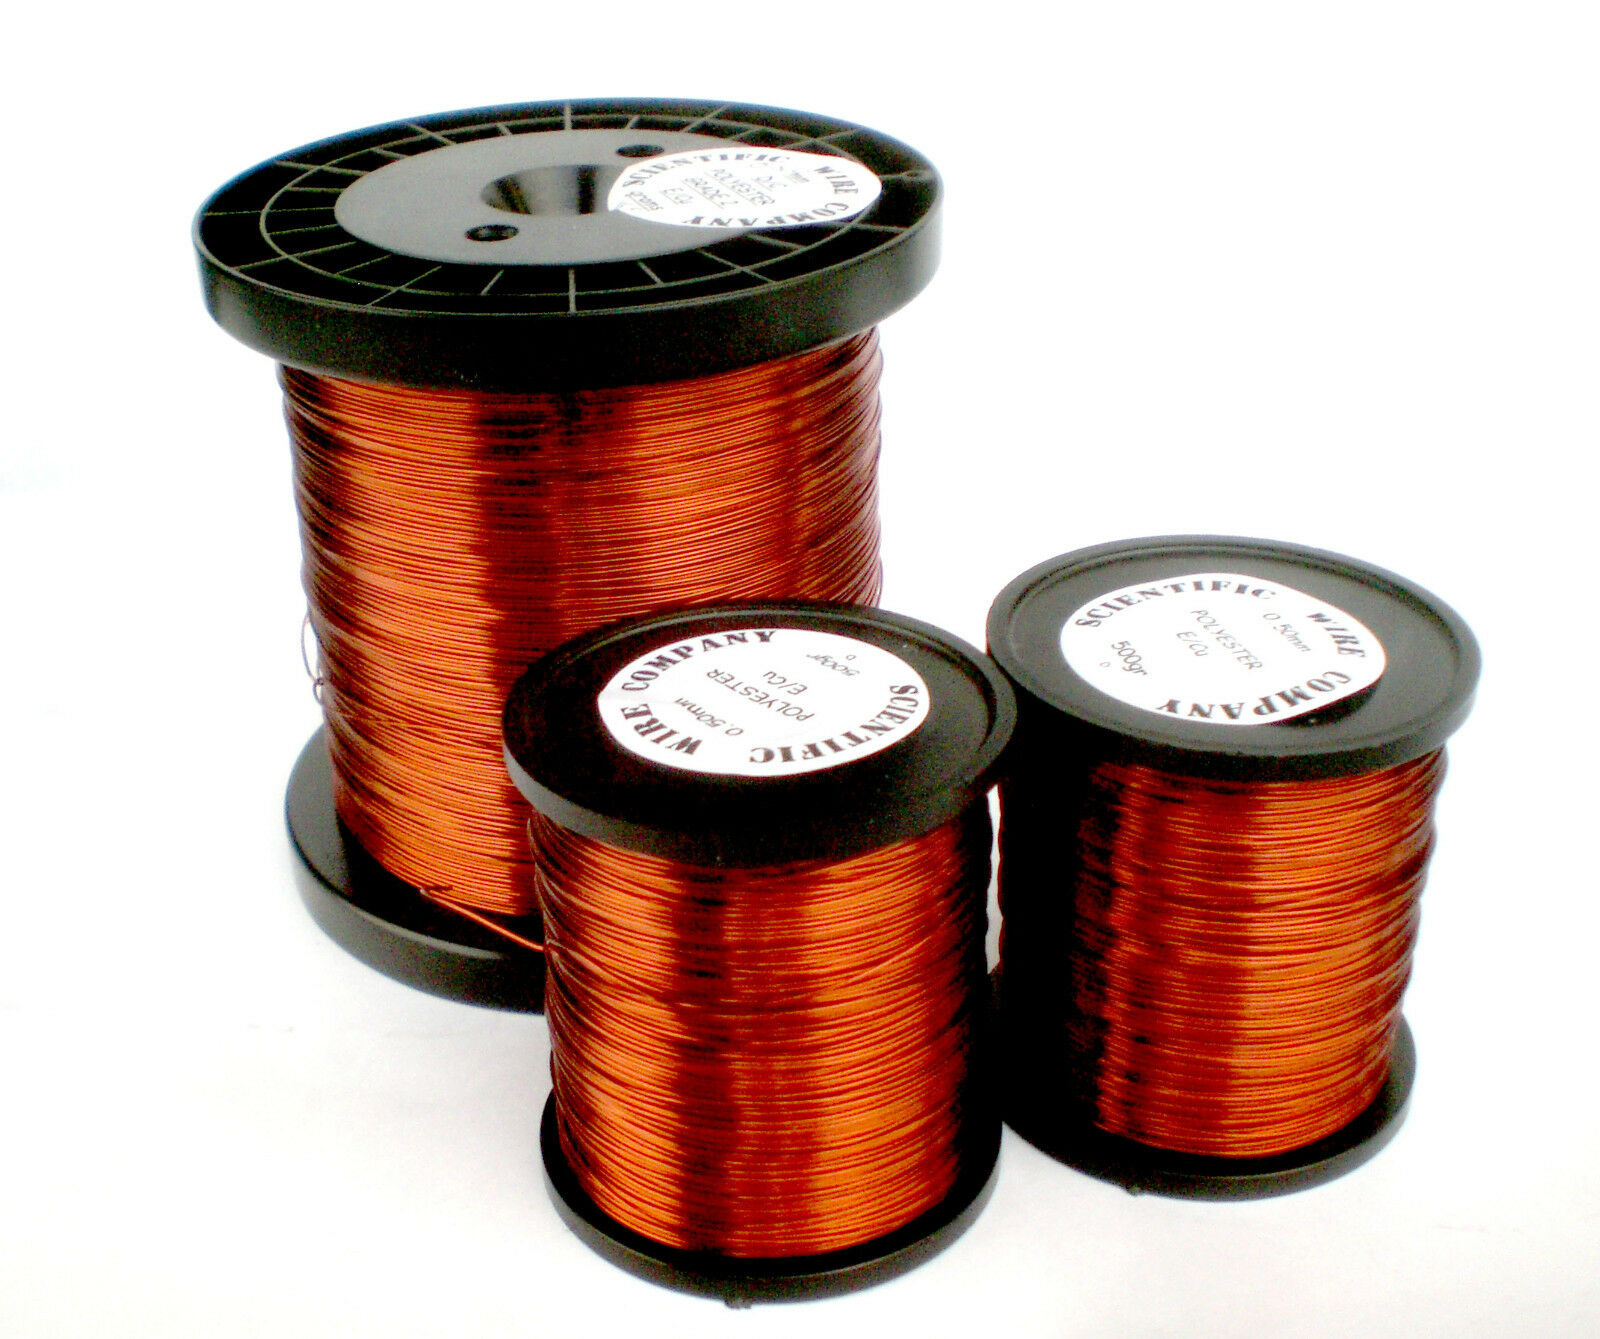 1.12MM ENAMELLED COPPER wire 1kg - COIL WIRE - HIGH TEMPERATURE ...